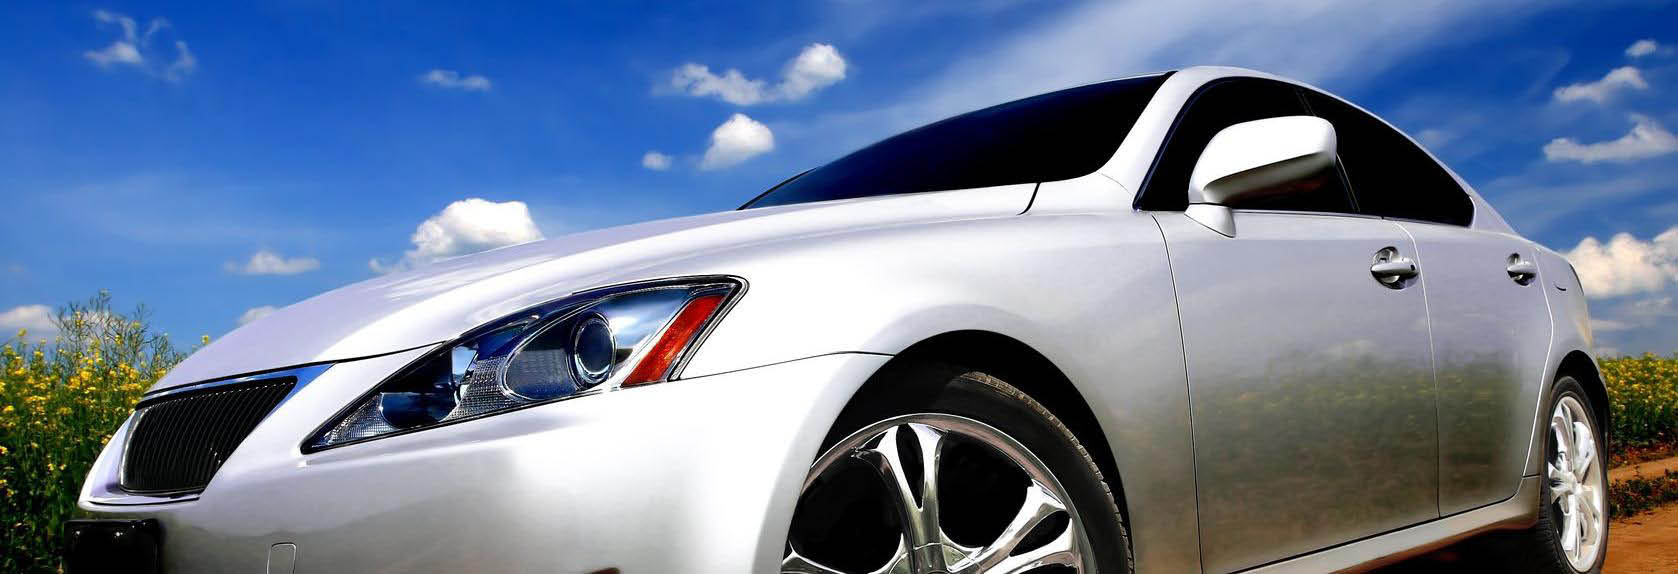 New silver car loans available at South Division Credit Union